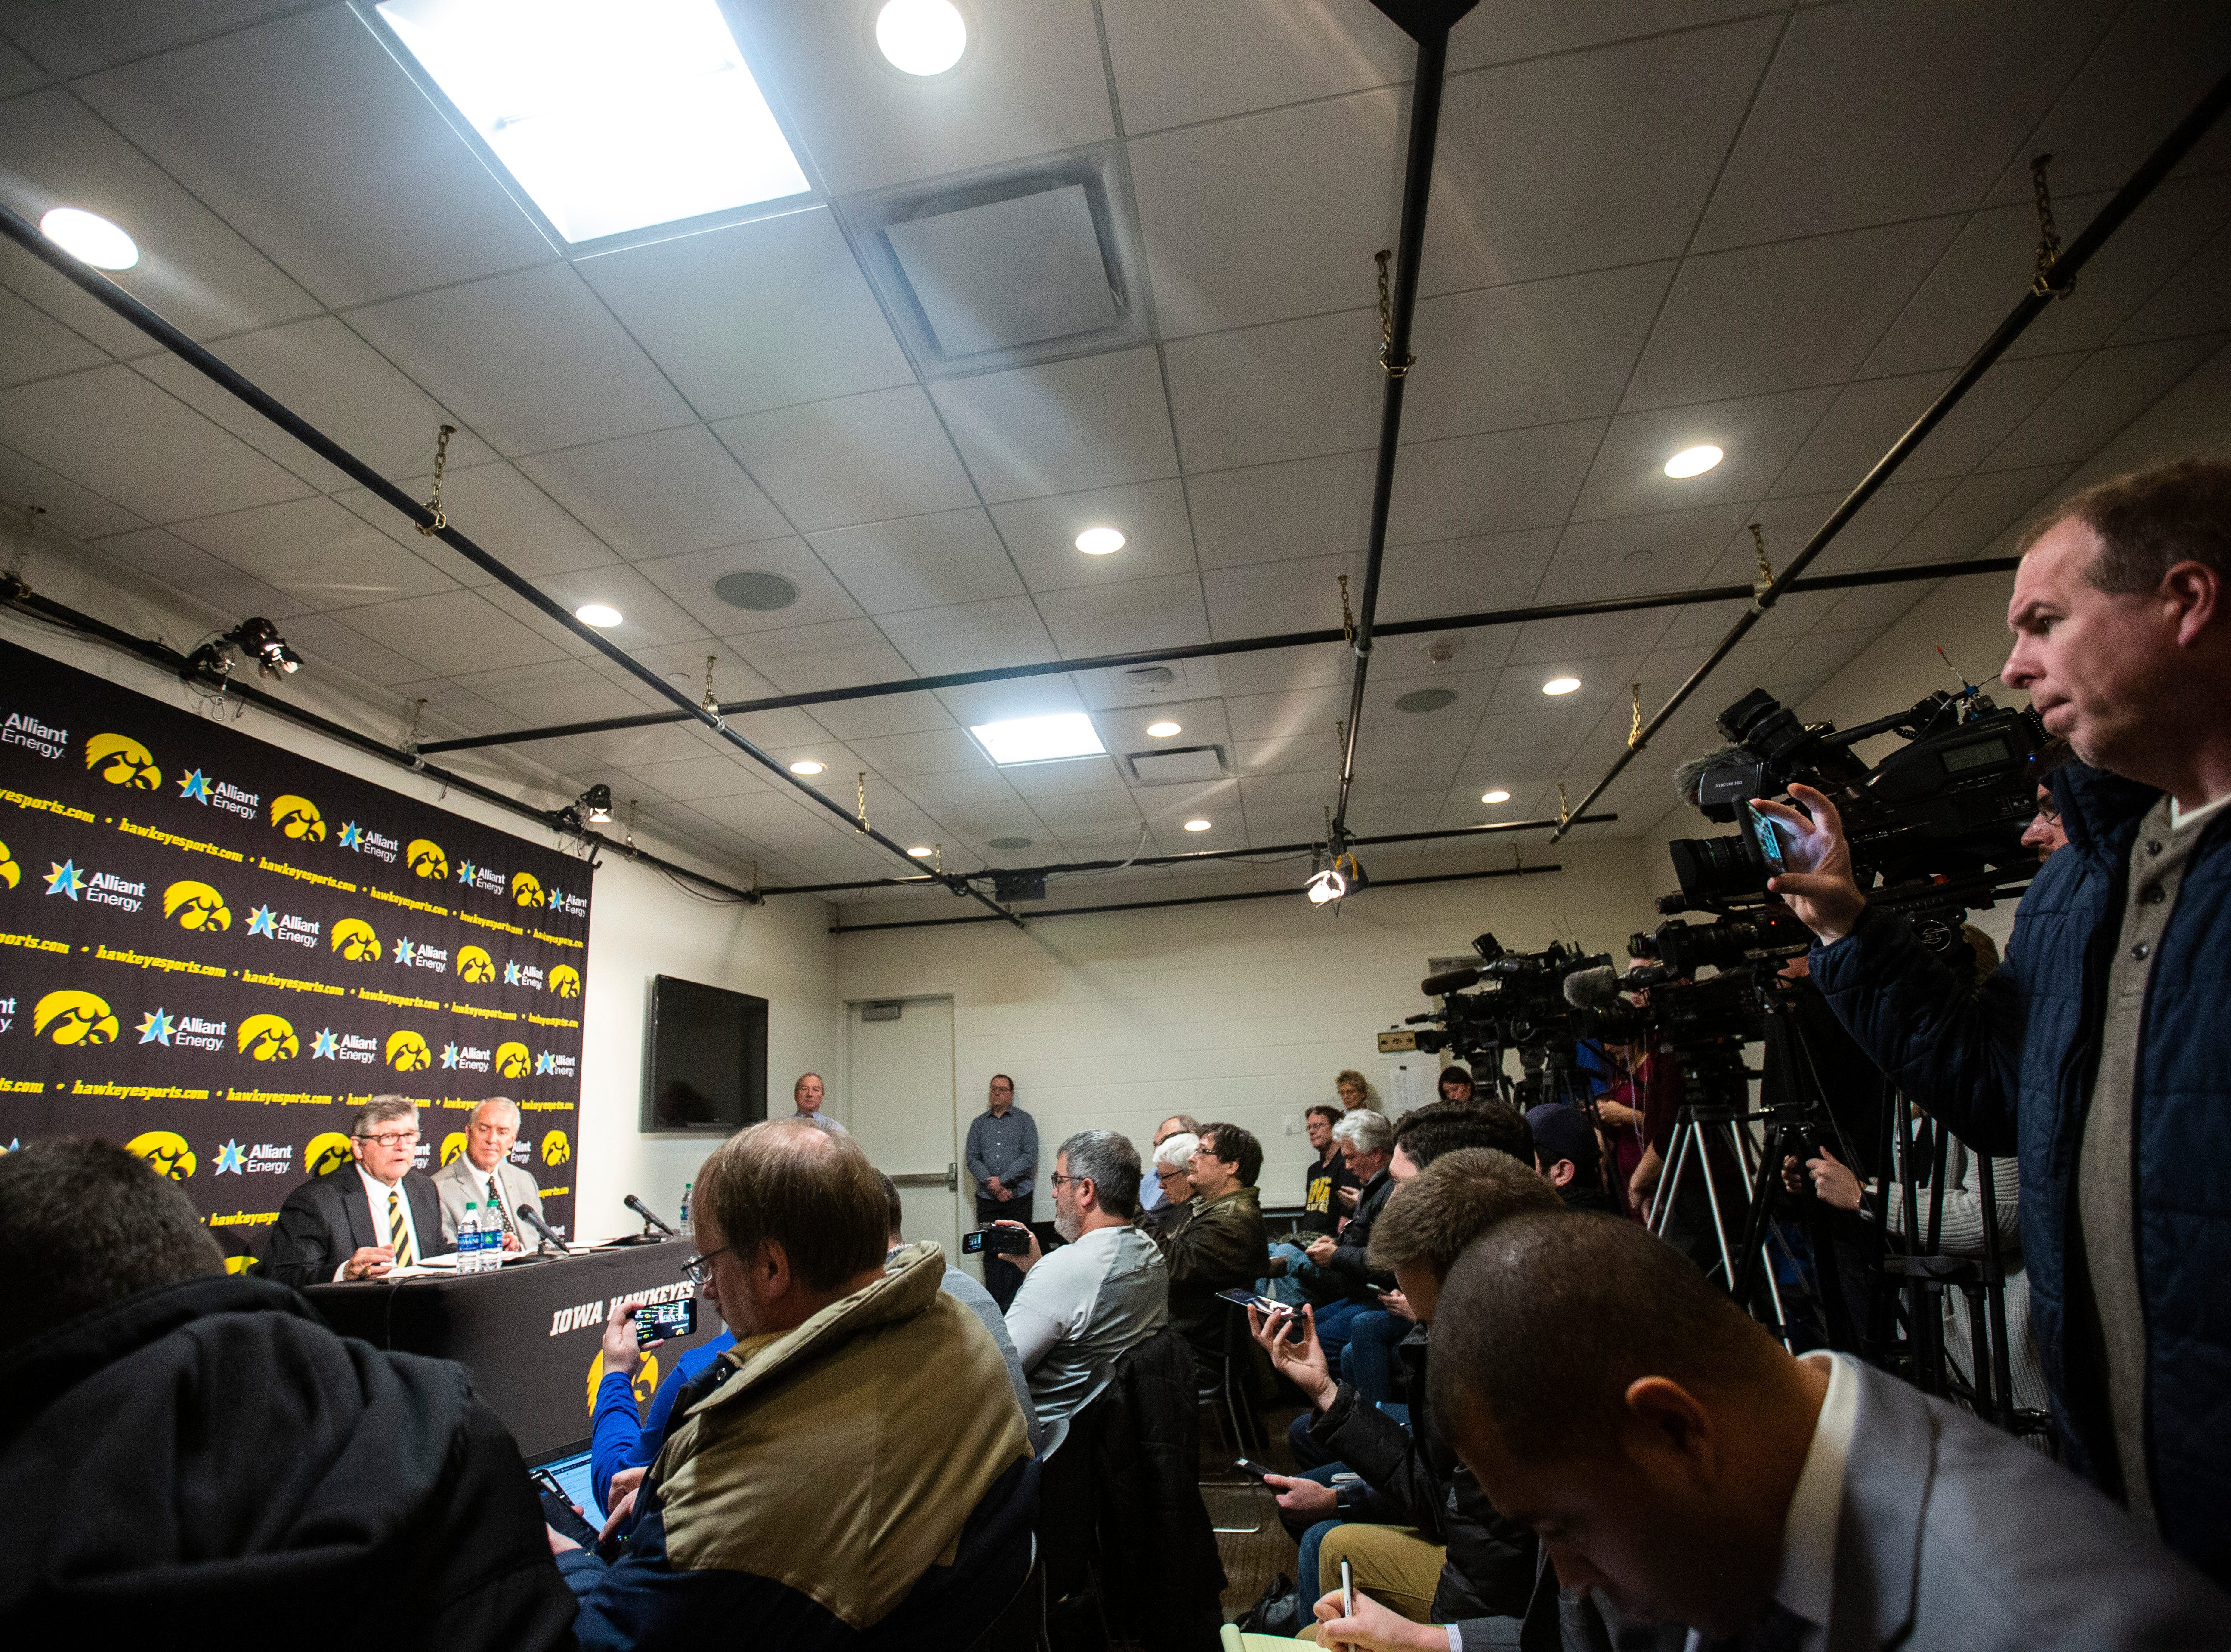 Iowa play-by-play commentator Gary Dolphin, left, speaks while Iowa athletic director Gary Barta listens during a press conference on Wednesday, Feb. 27, 2019, at Carver-Hawkeye Arena in Iowa City, Iowa.